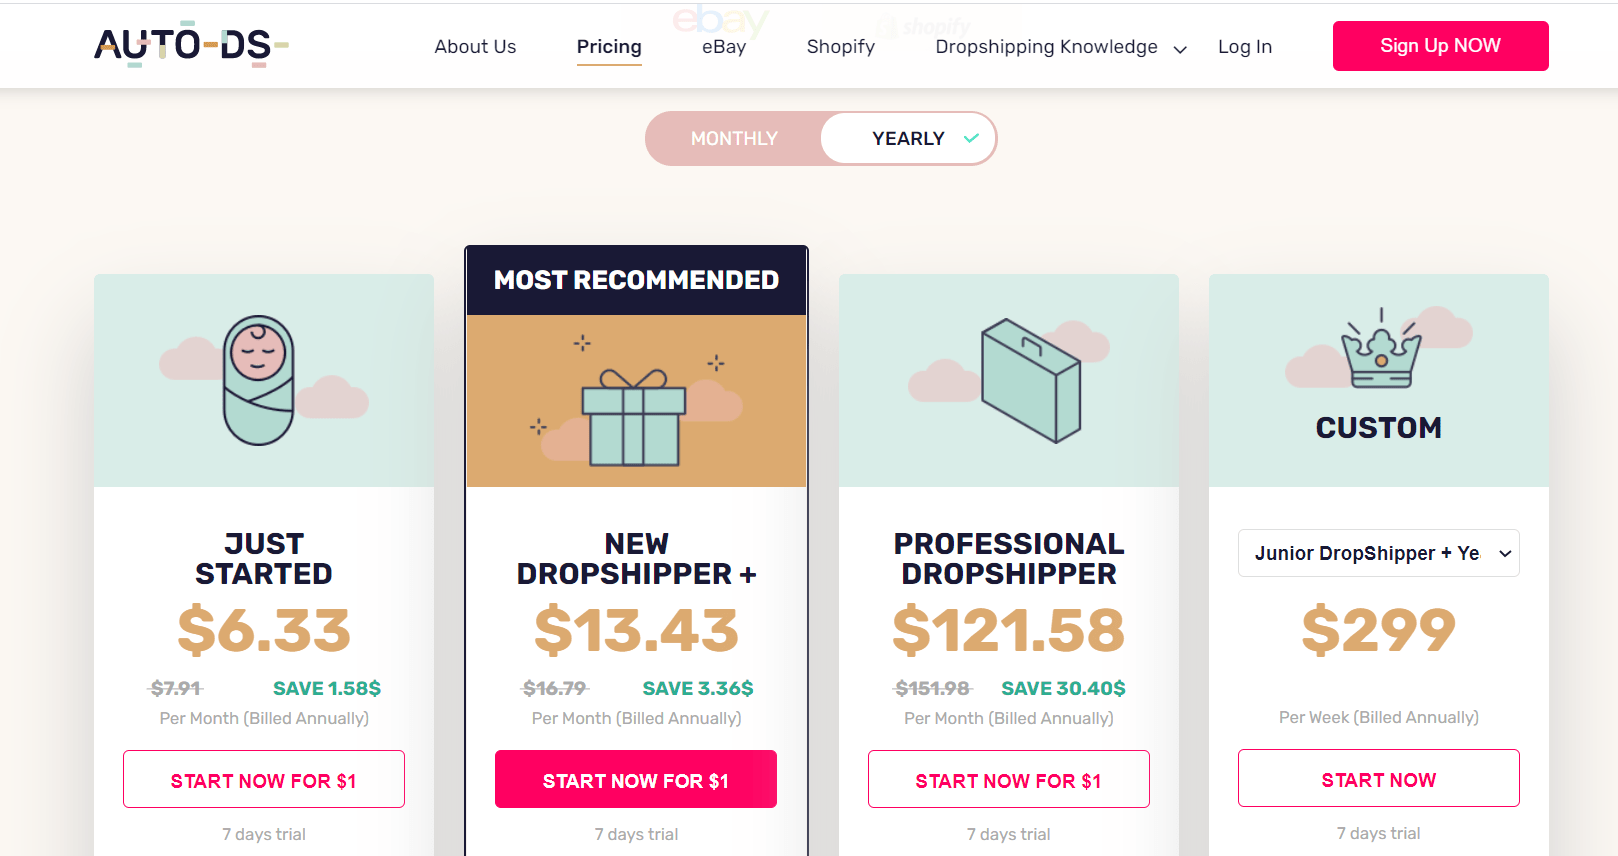 AutoDS dropshipping tool